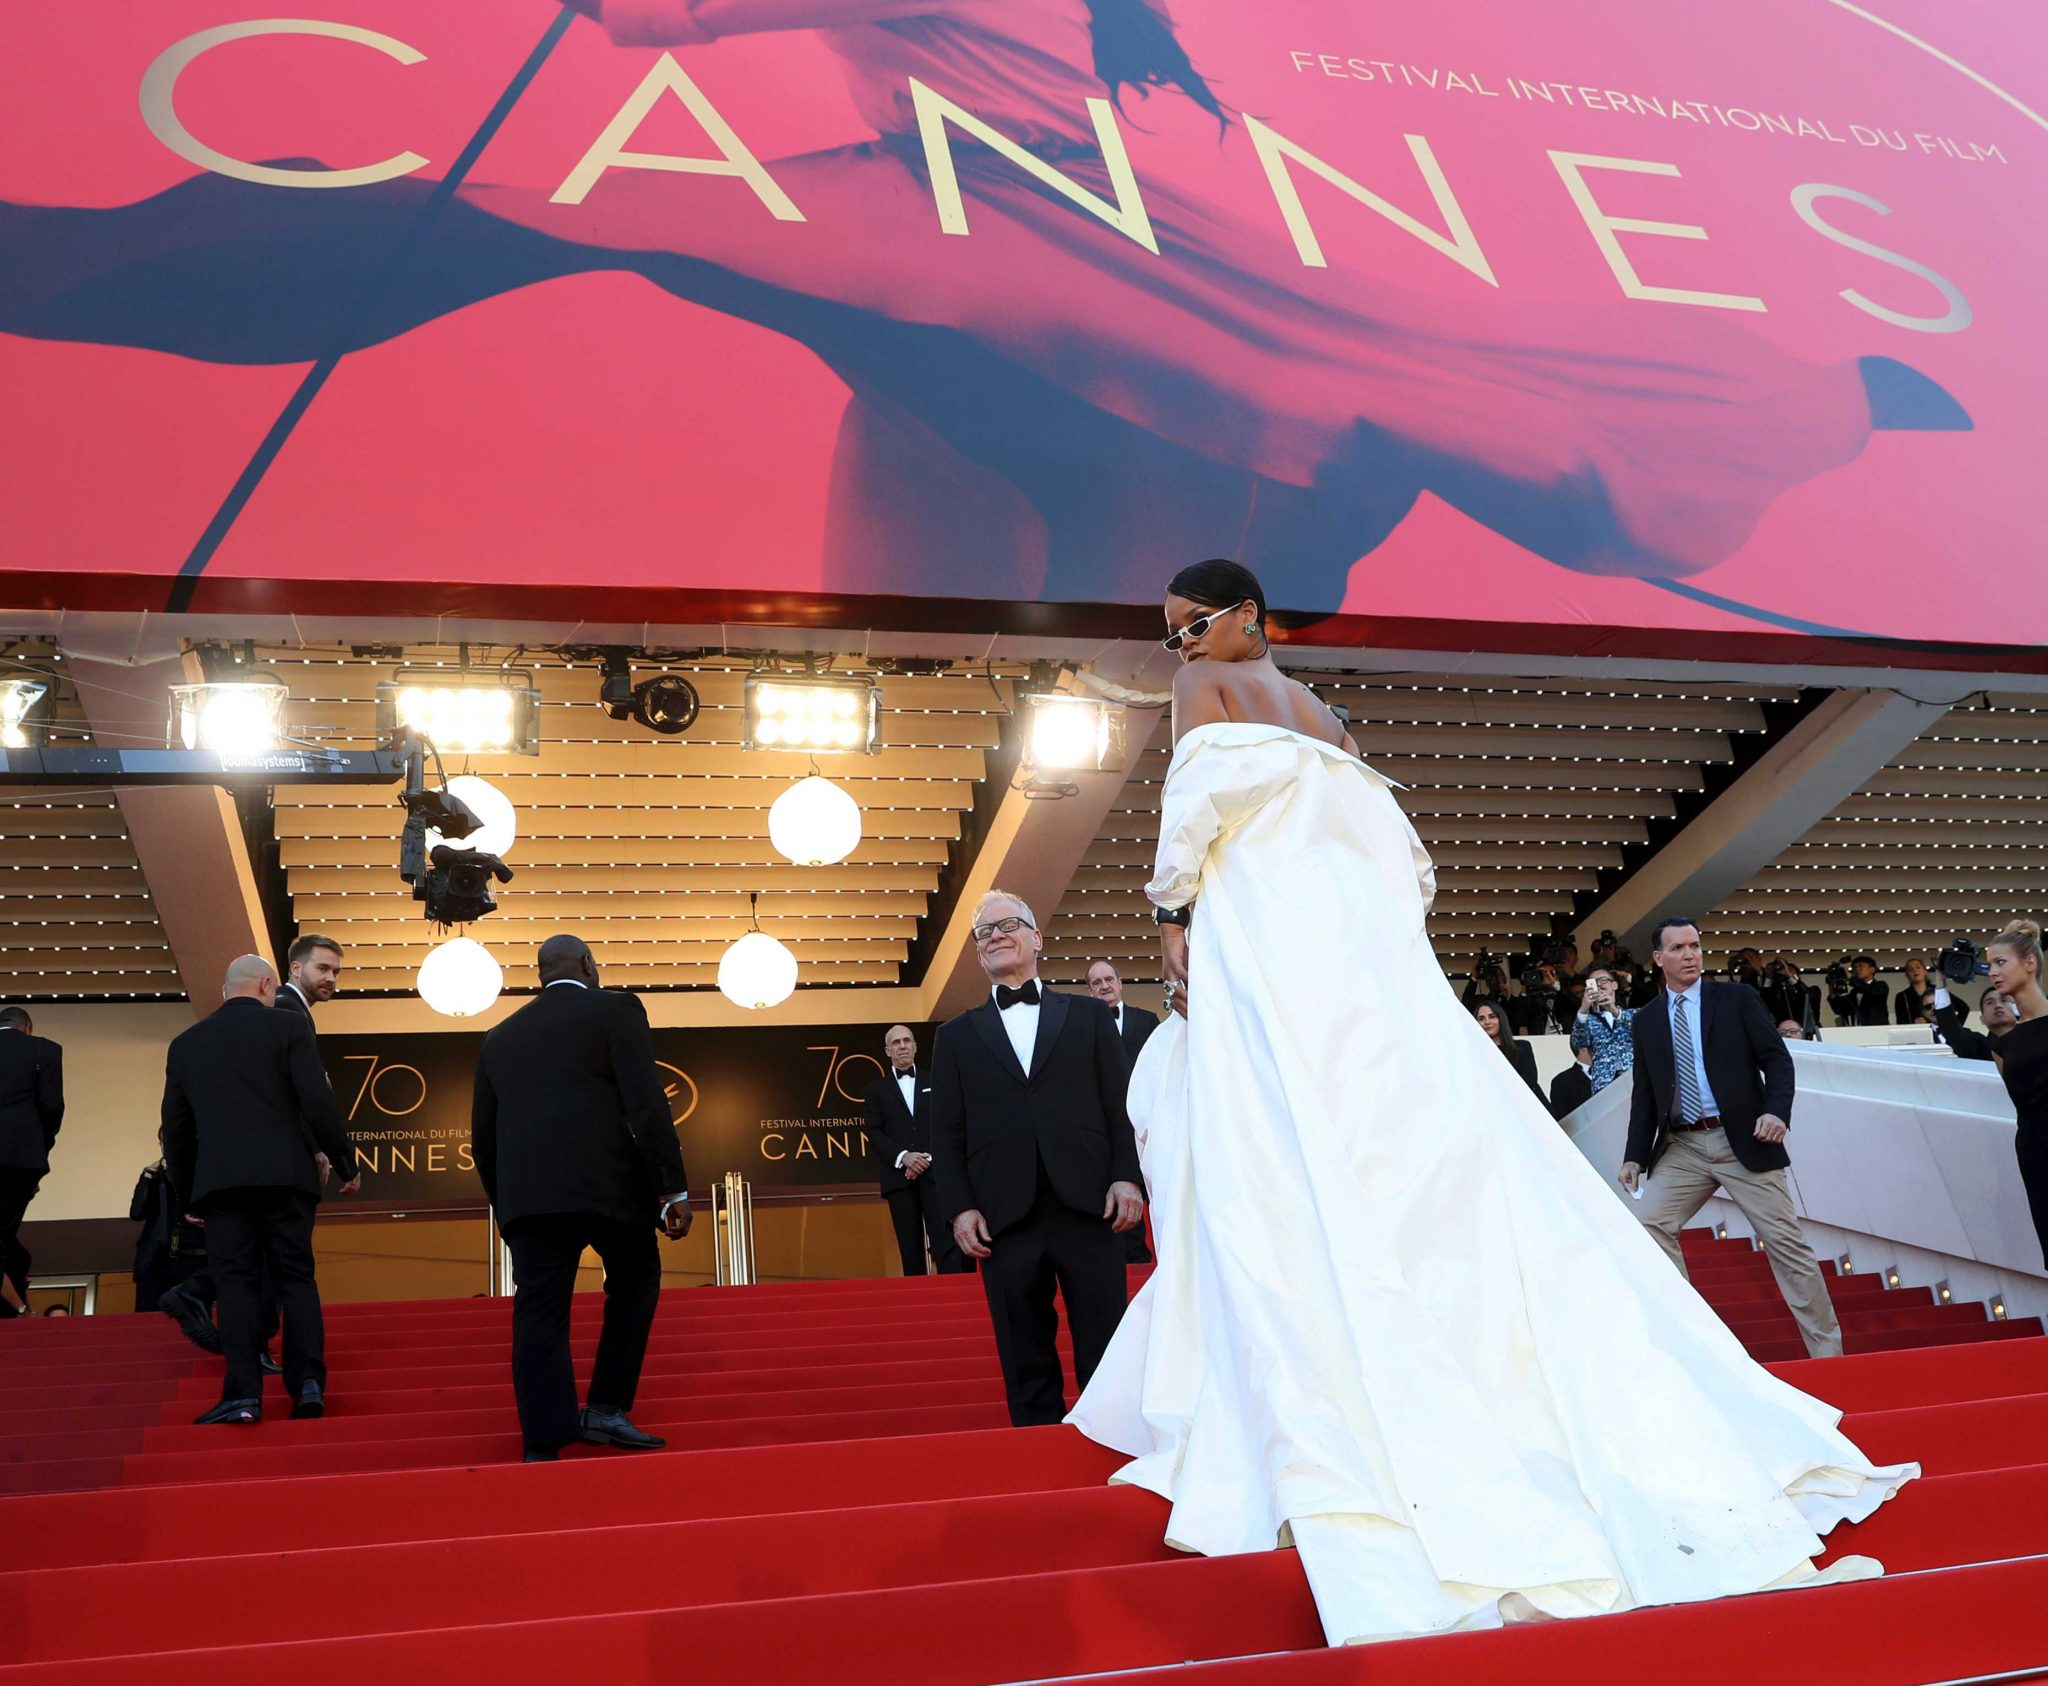 cannes 2017 palma d'oro red carpet